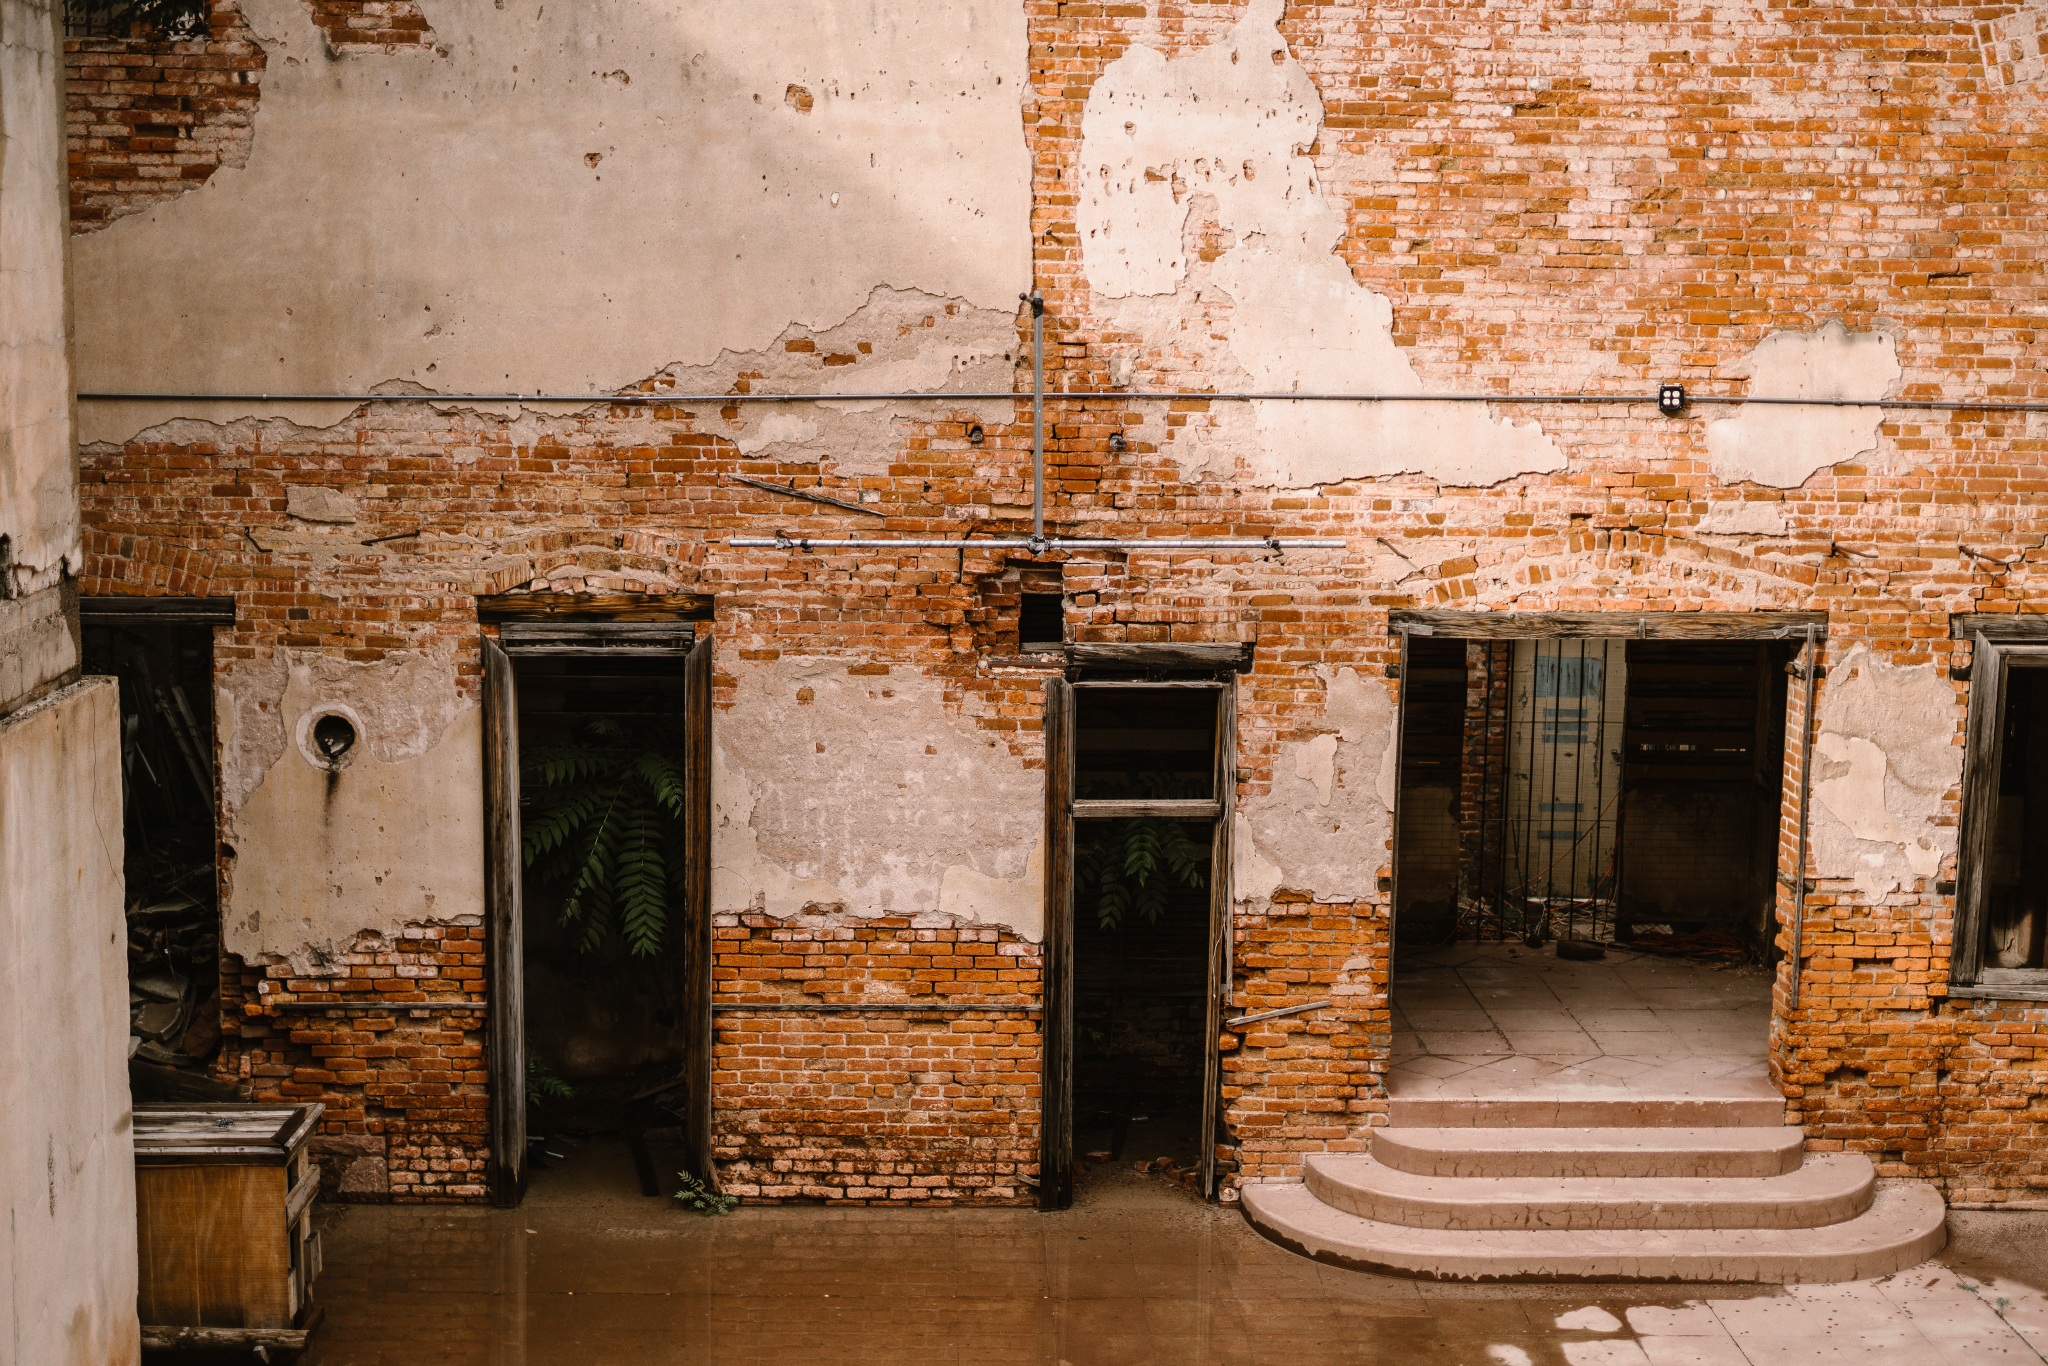 san diego wedding   photographer | side of old brick building with entrance ways